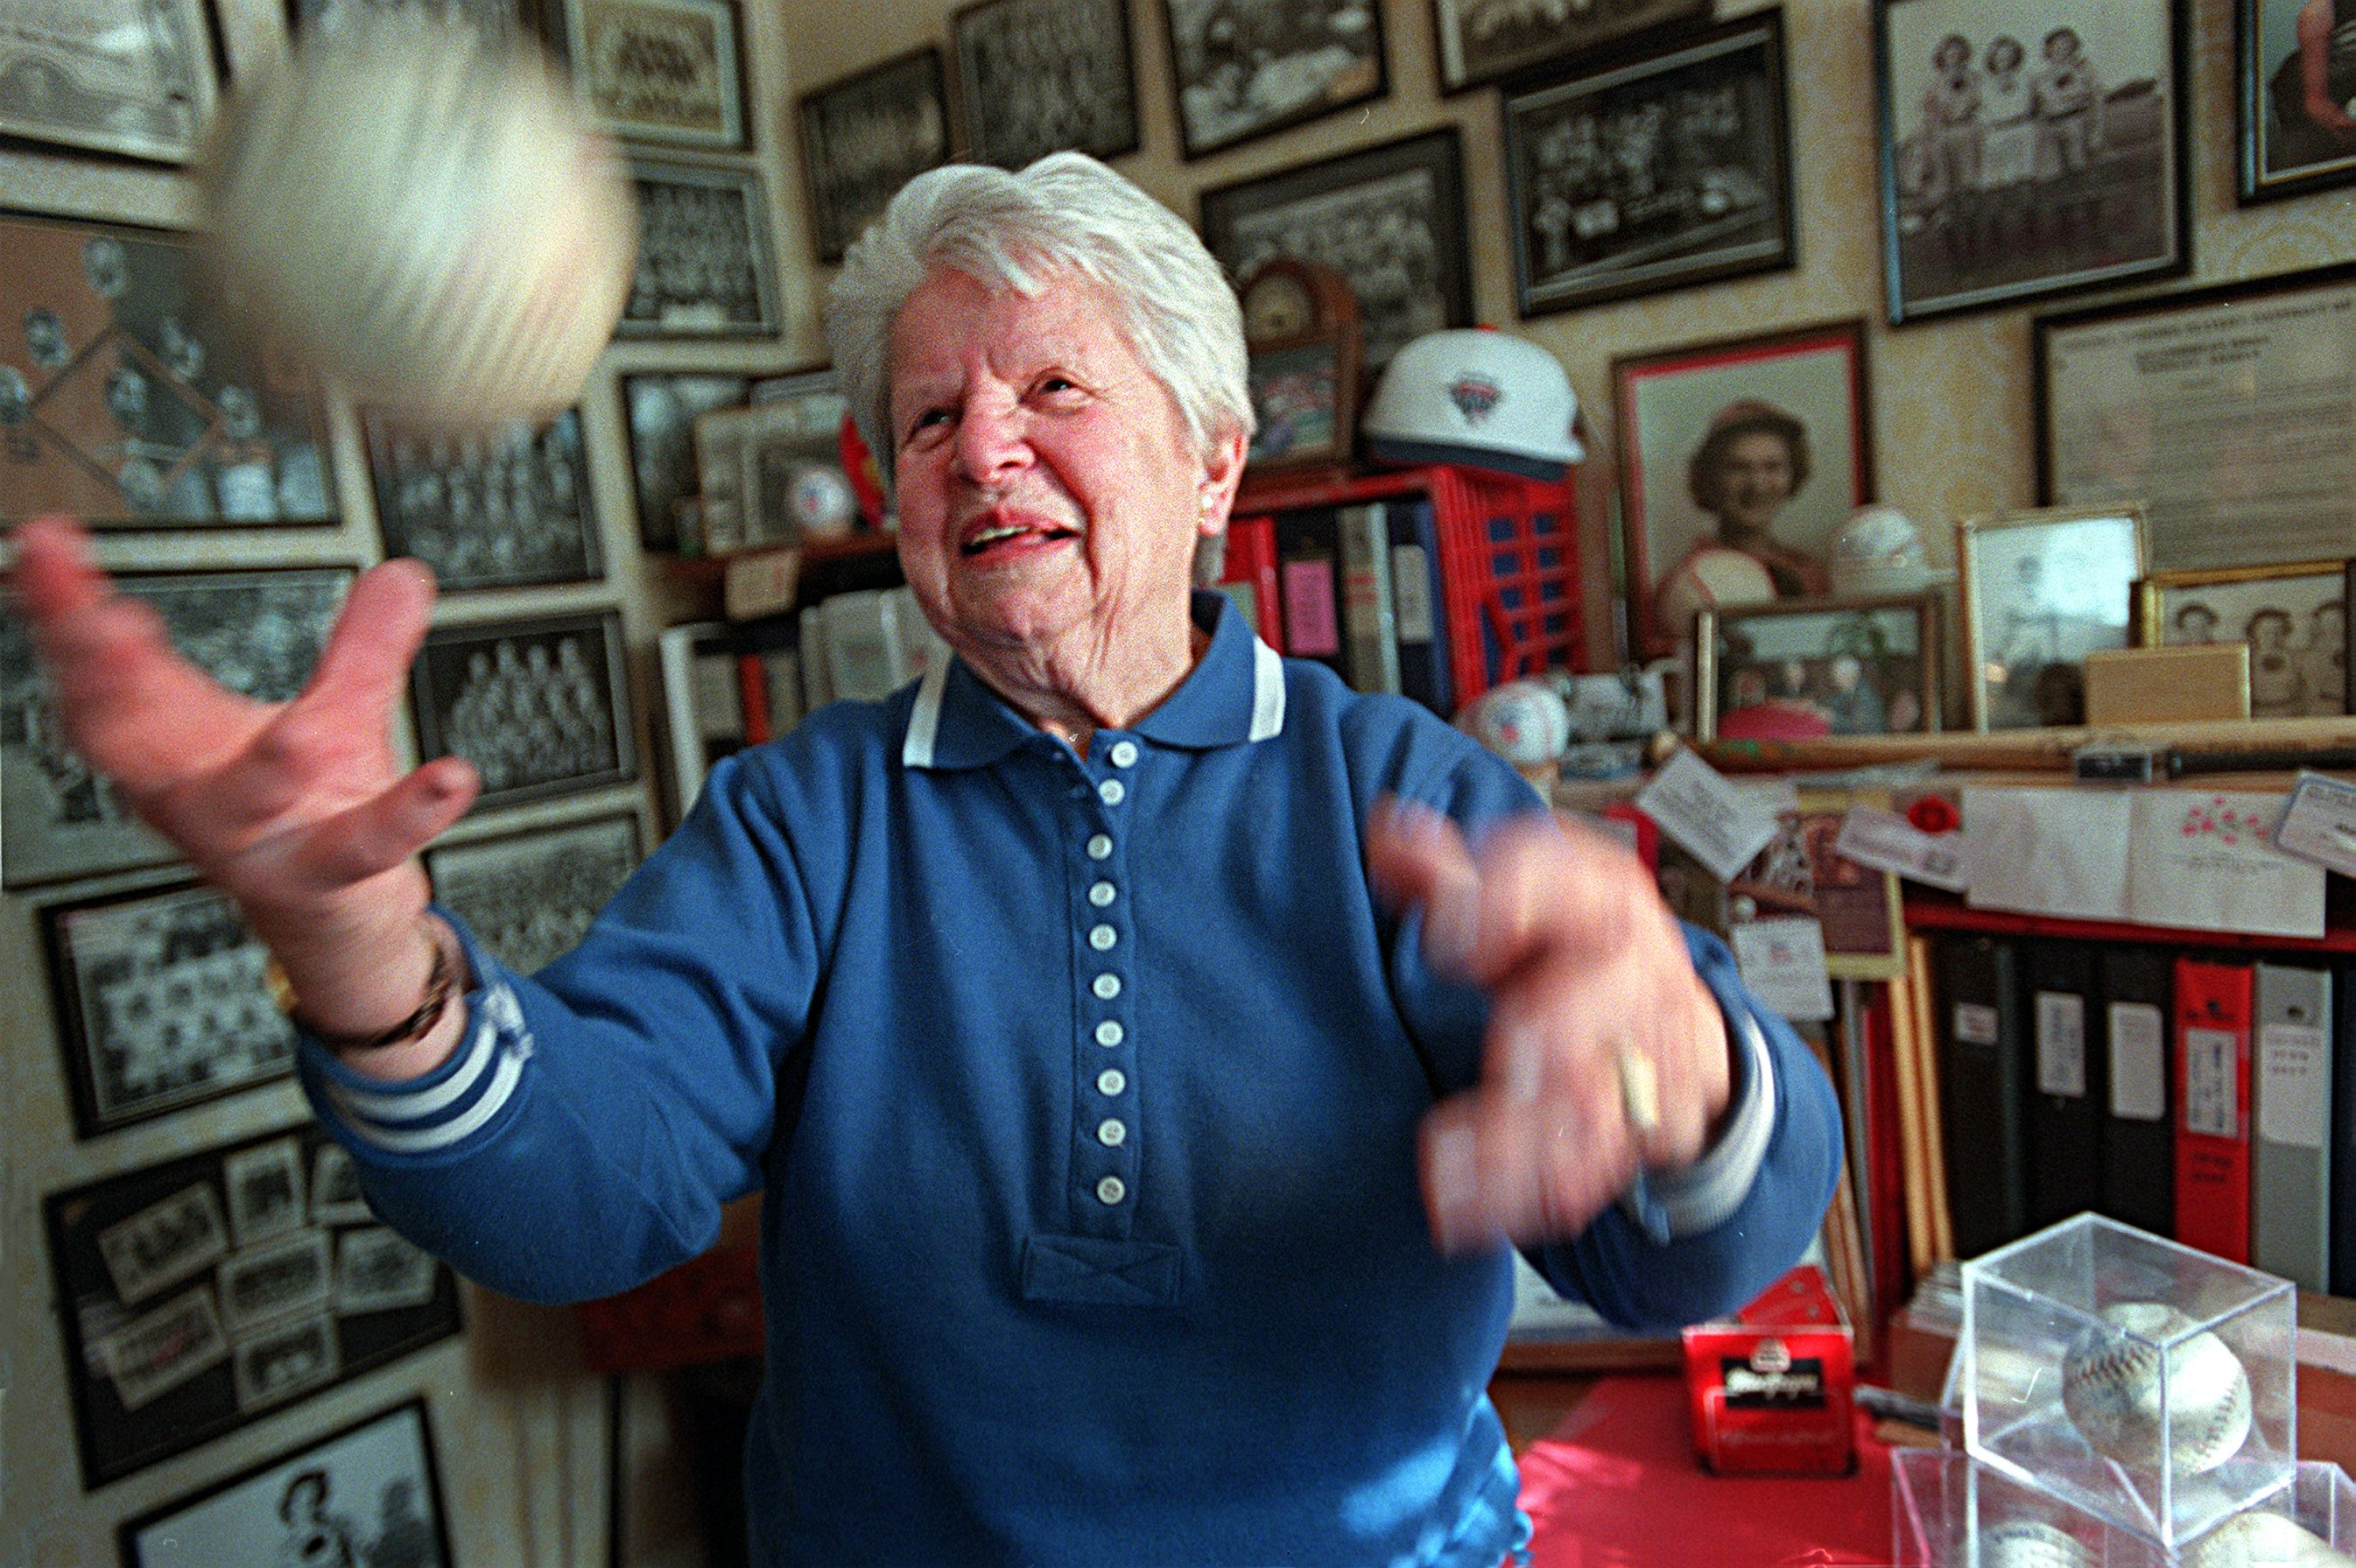 Mary Pratt in her home in Quincy, MA on Feb. 28, 2001. (Photo by Suzanne Kreiter/The Boston Globe via Getty Images)